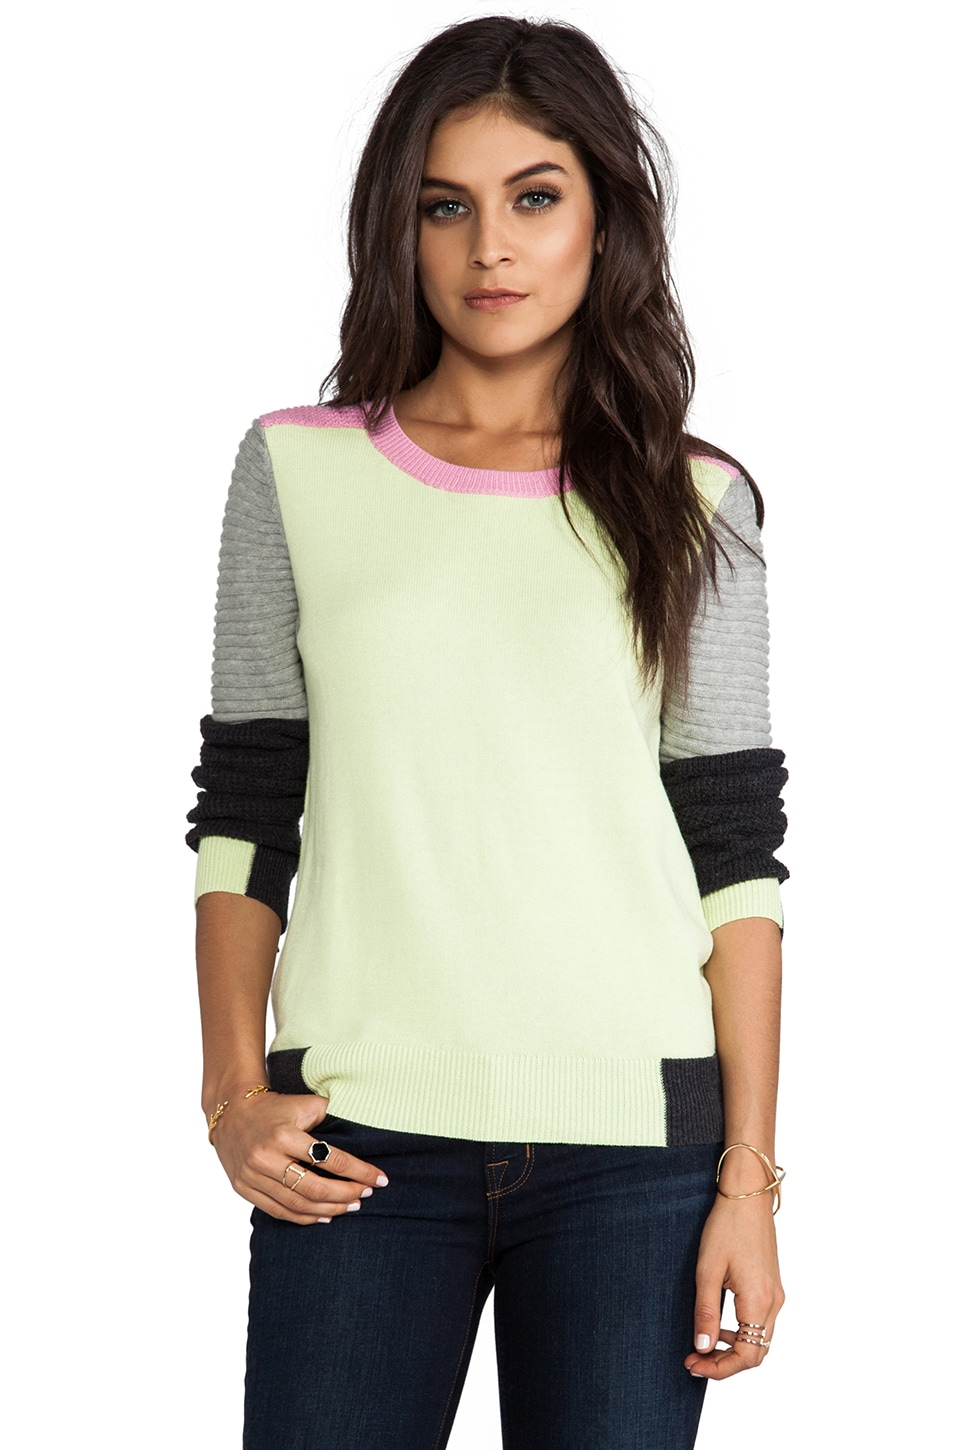 SHAE Moto Sweater in Lemon/Lime Combo